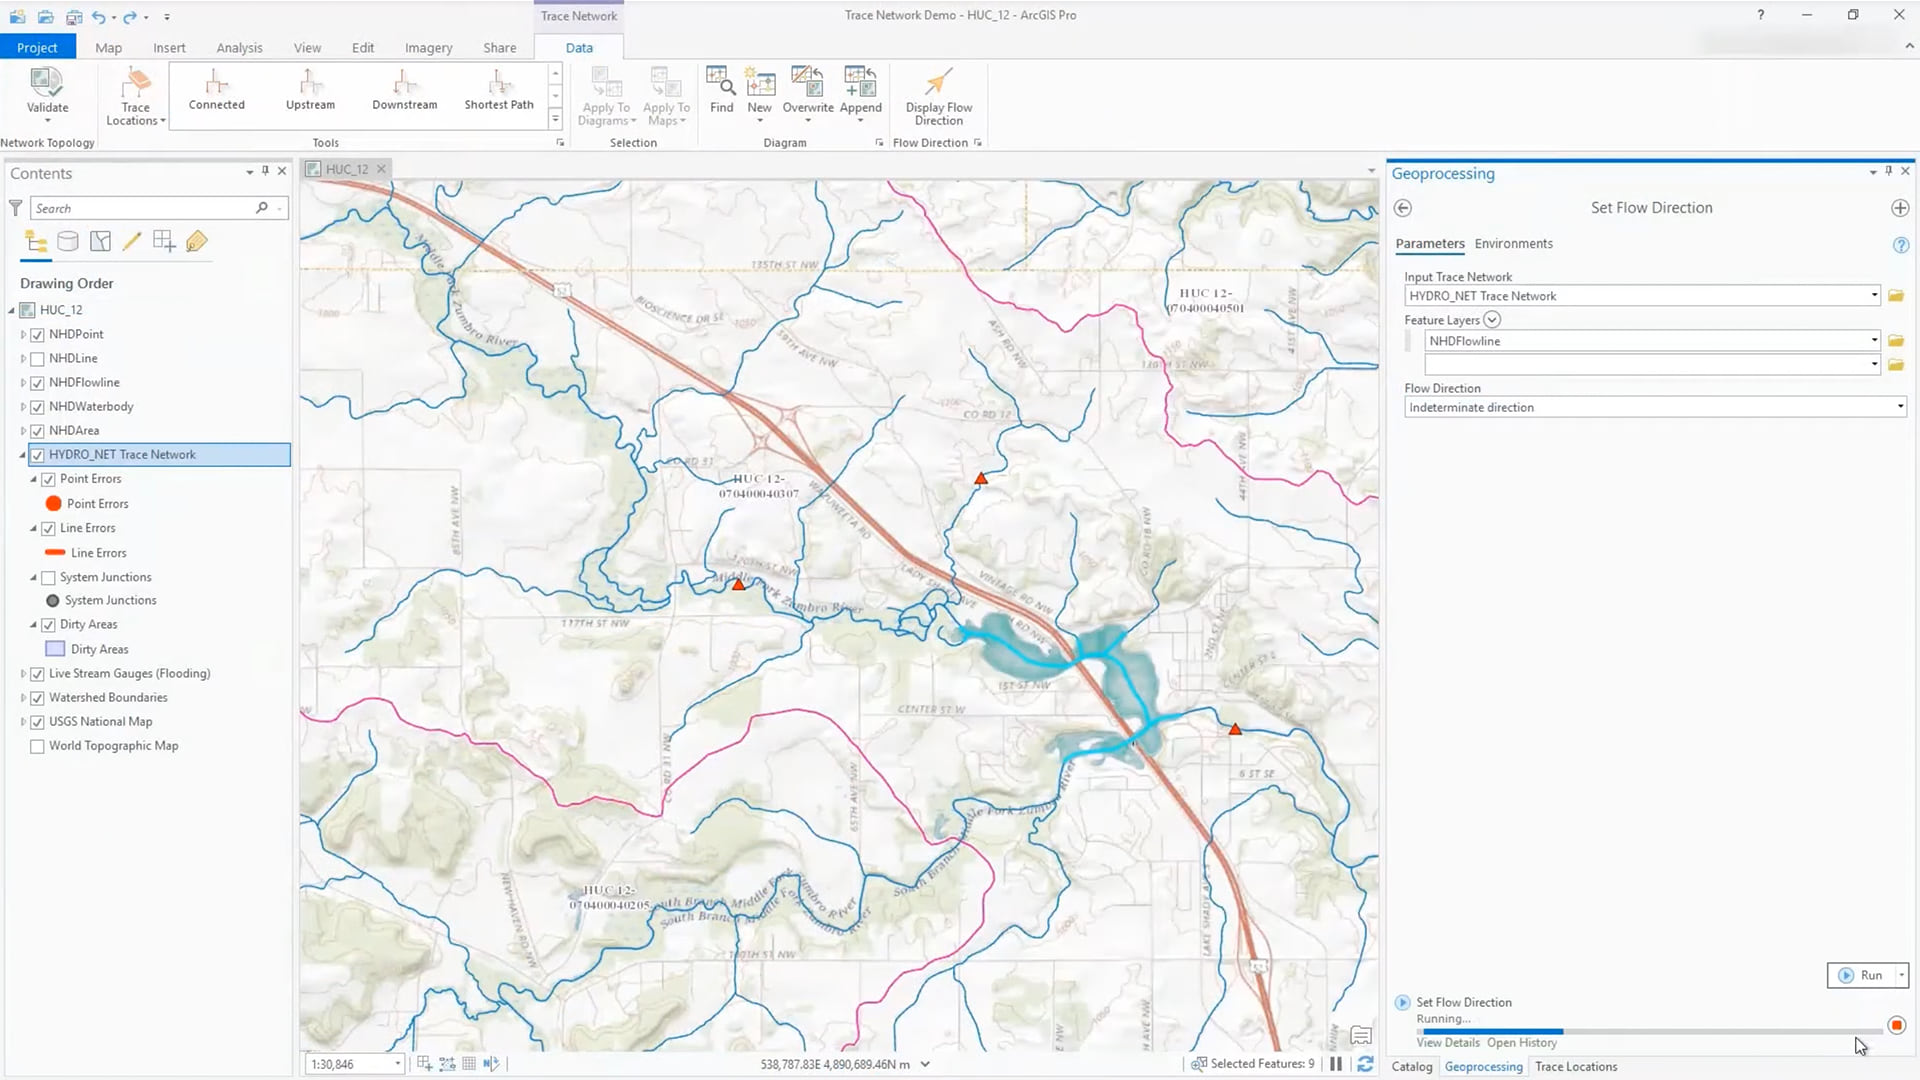 arcgis pro trace network